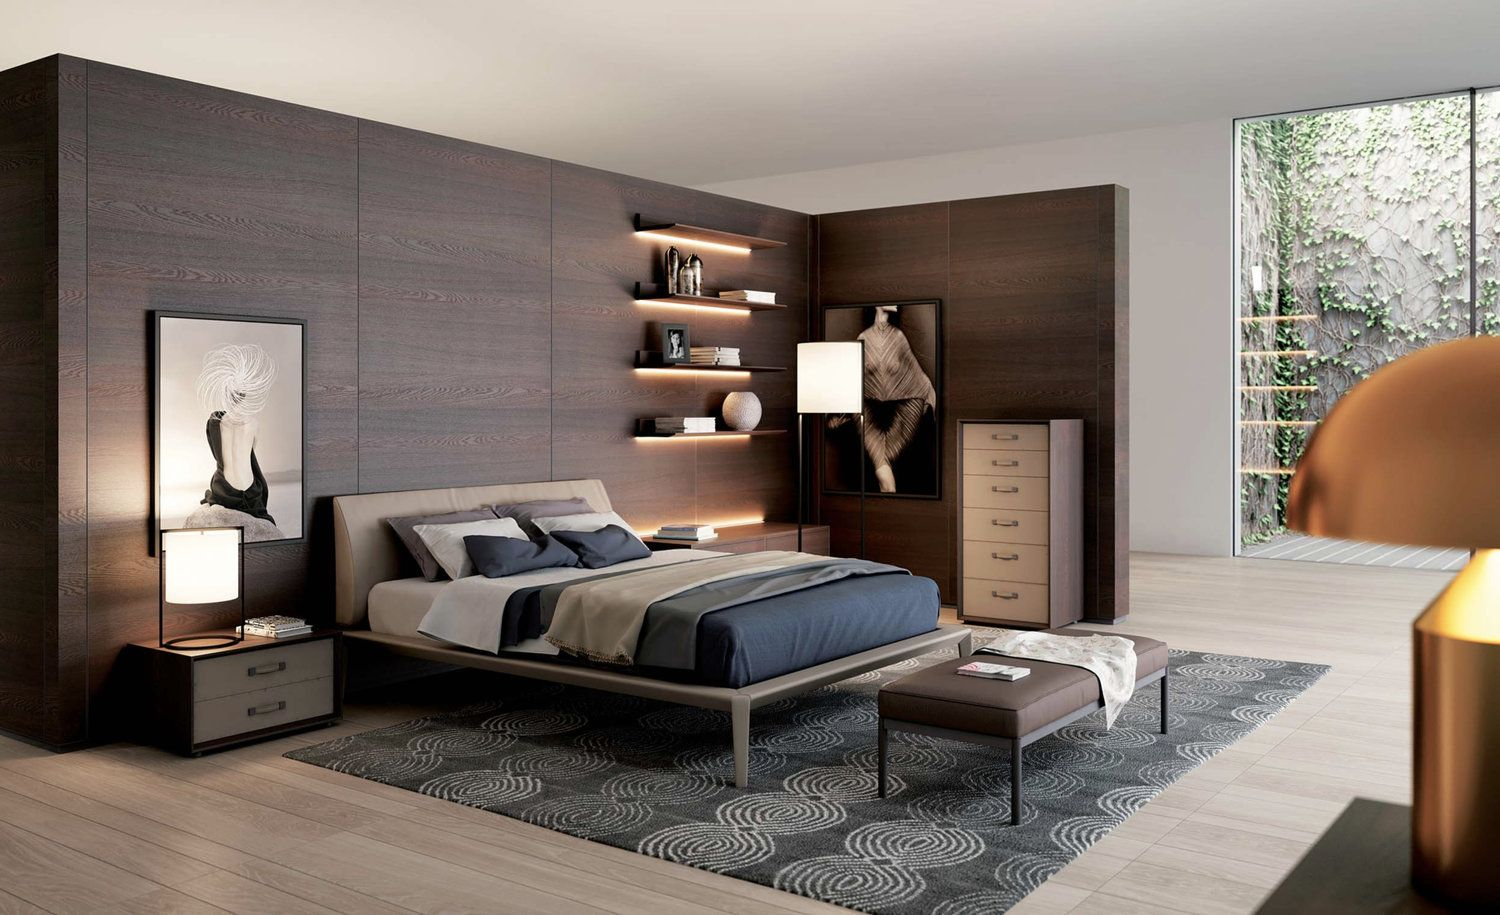 Italian Bedroom Furniture Image By Danielle Miles On New House In